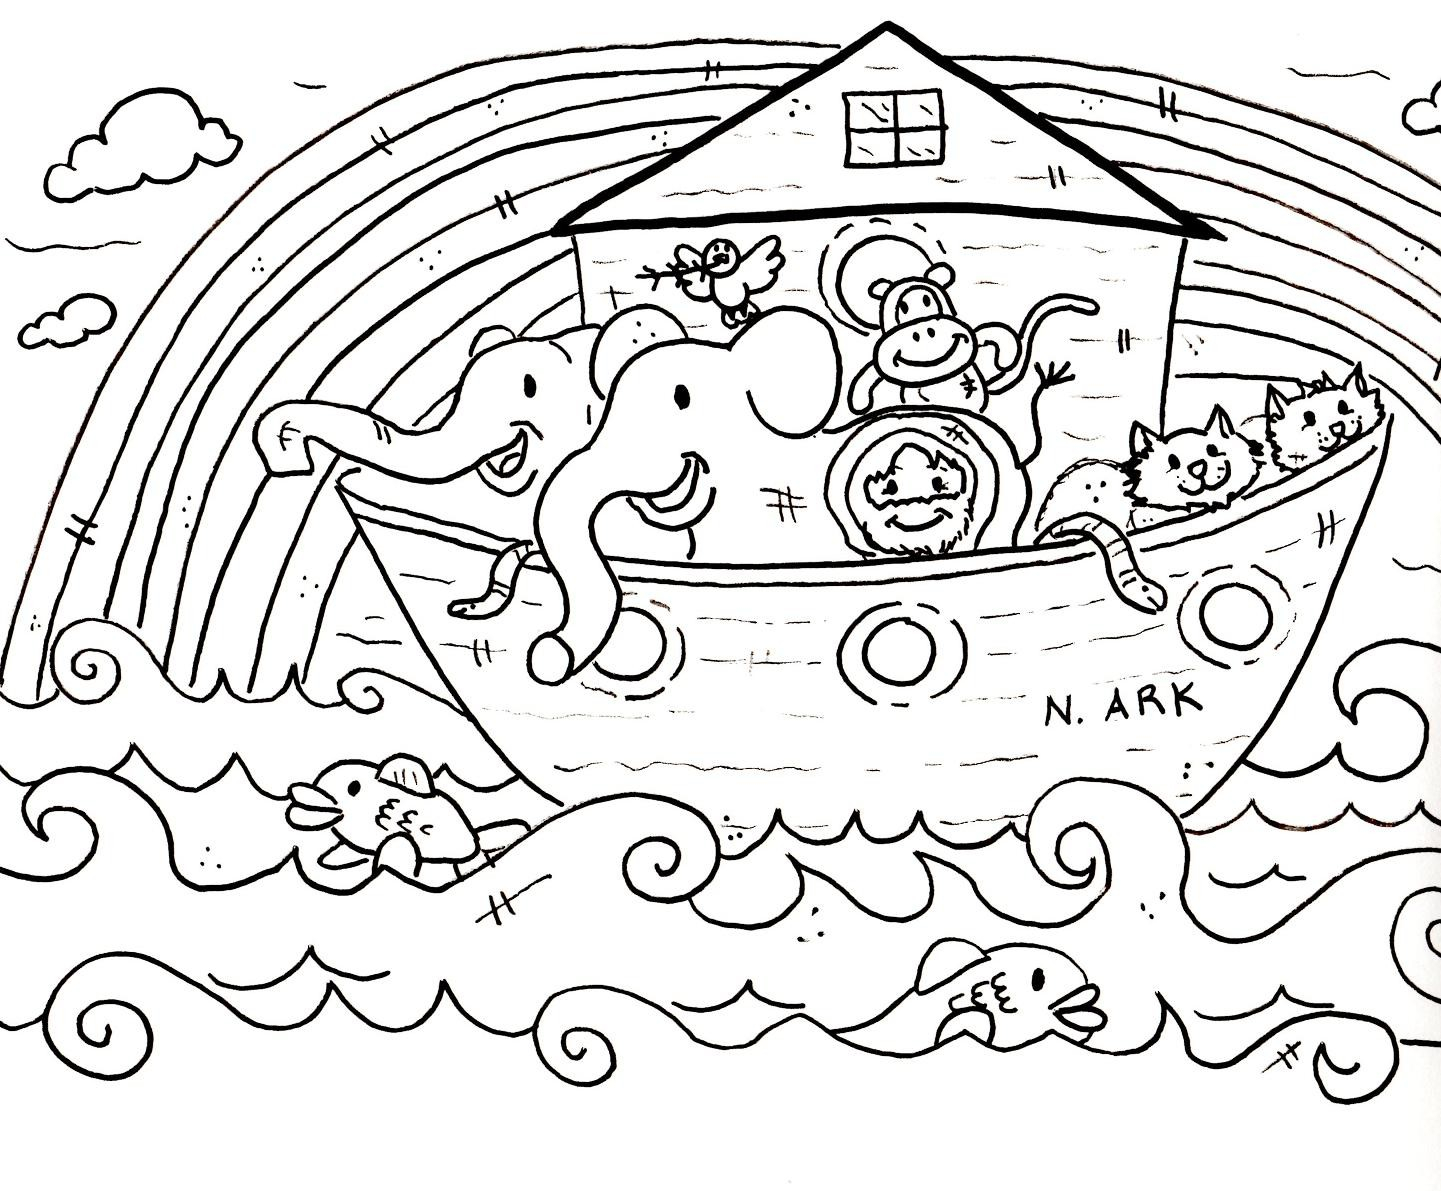 Coloring Pages Bible Stories Preschoolers | Freshcols - Free Printable Bible Story Coloring Pages